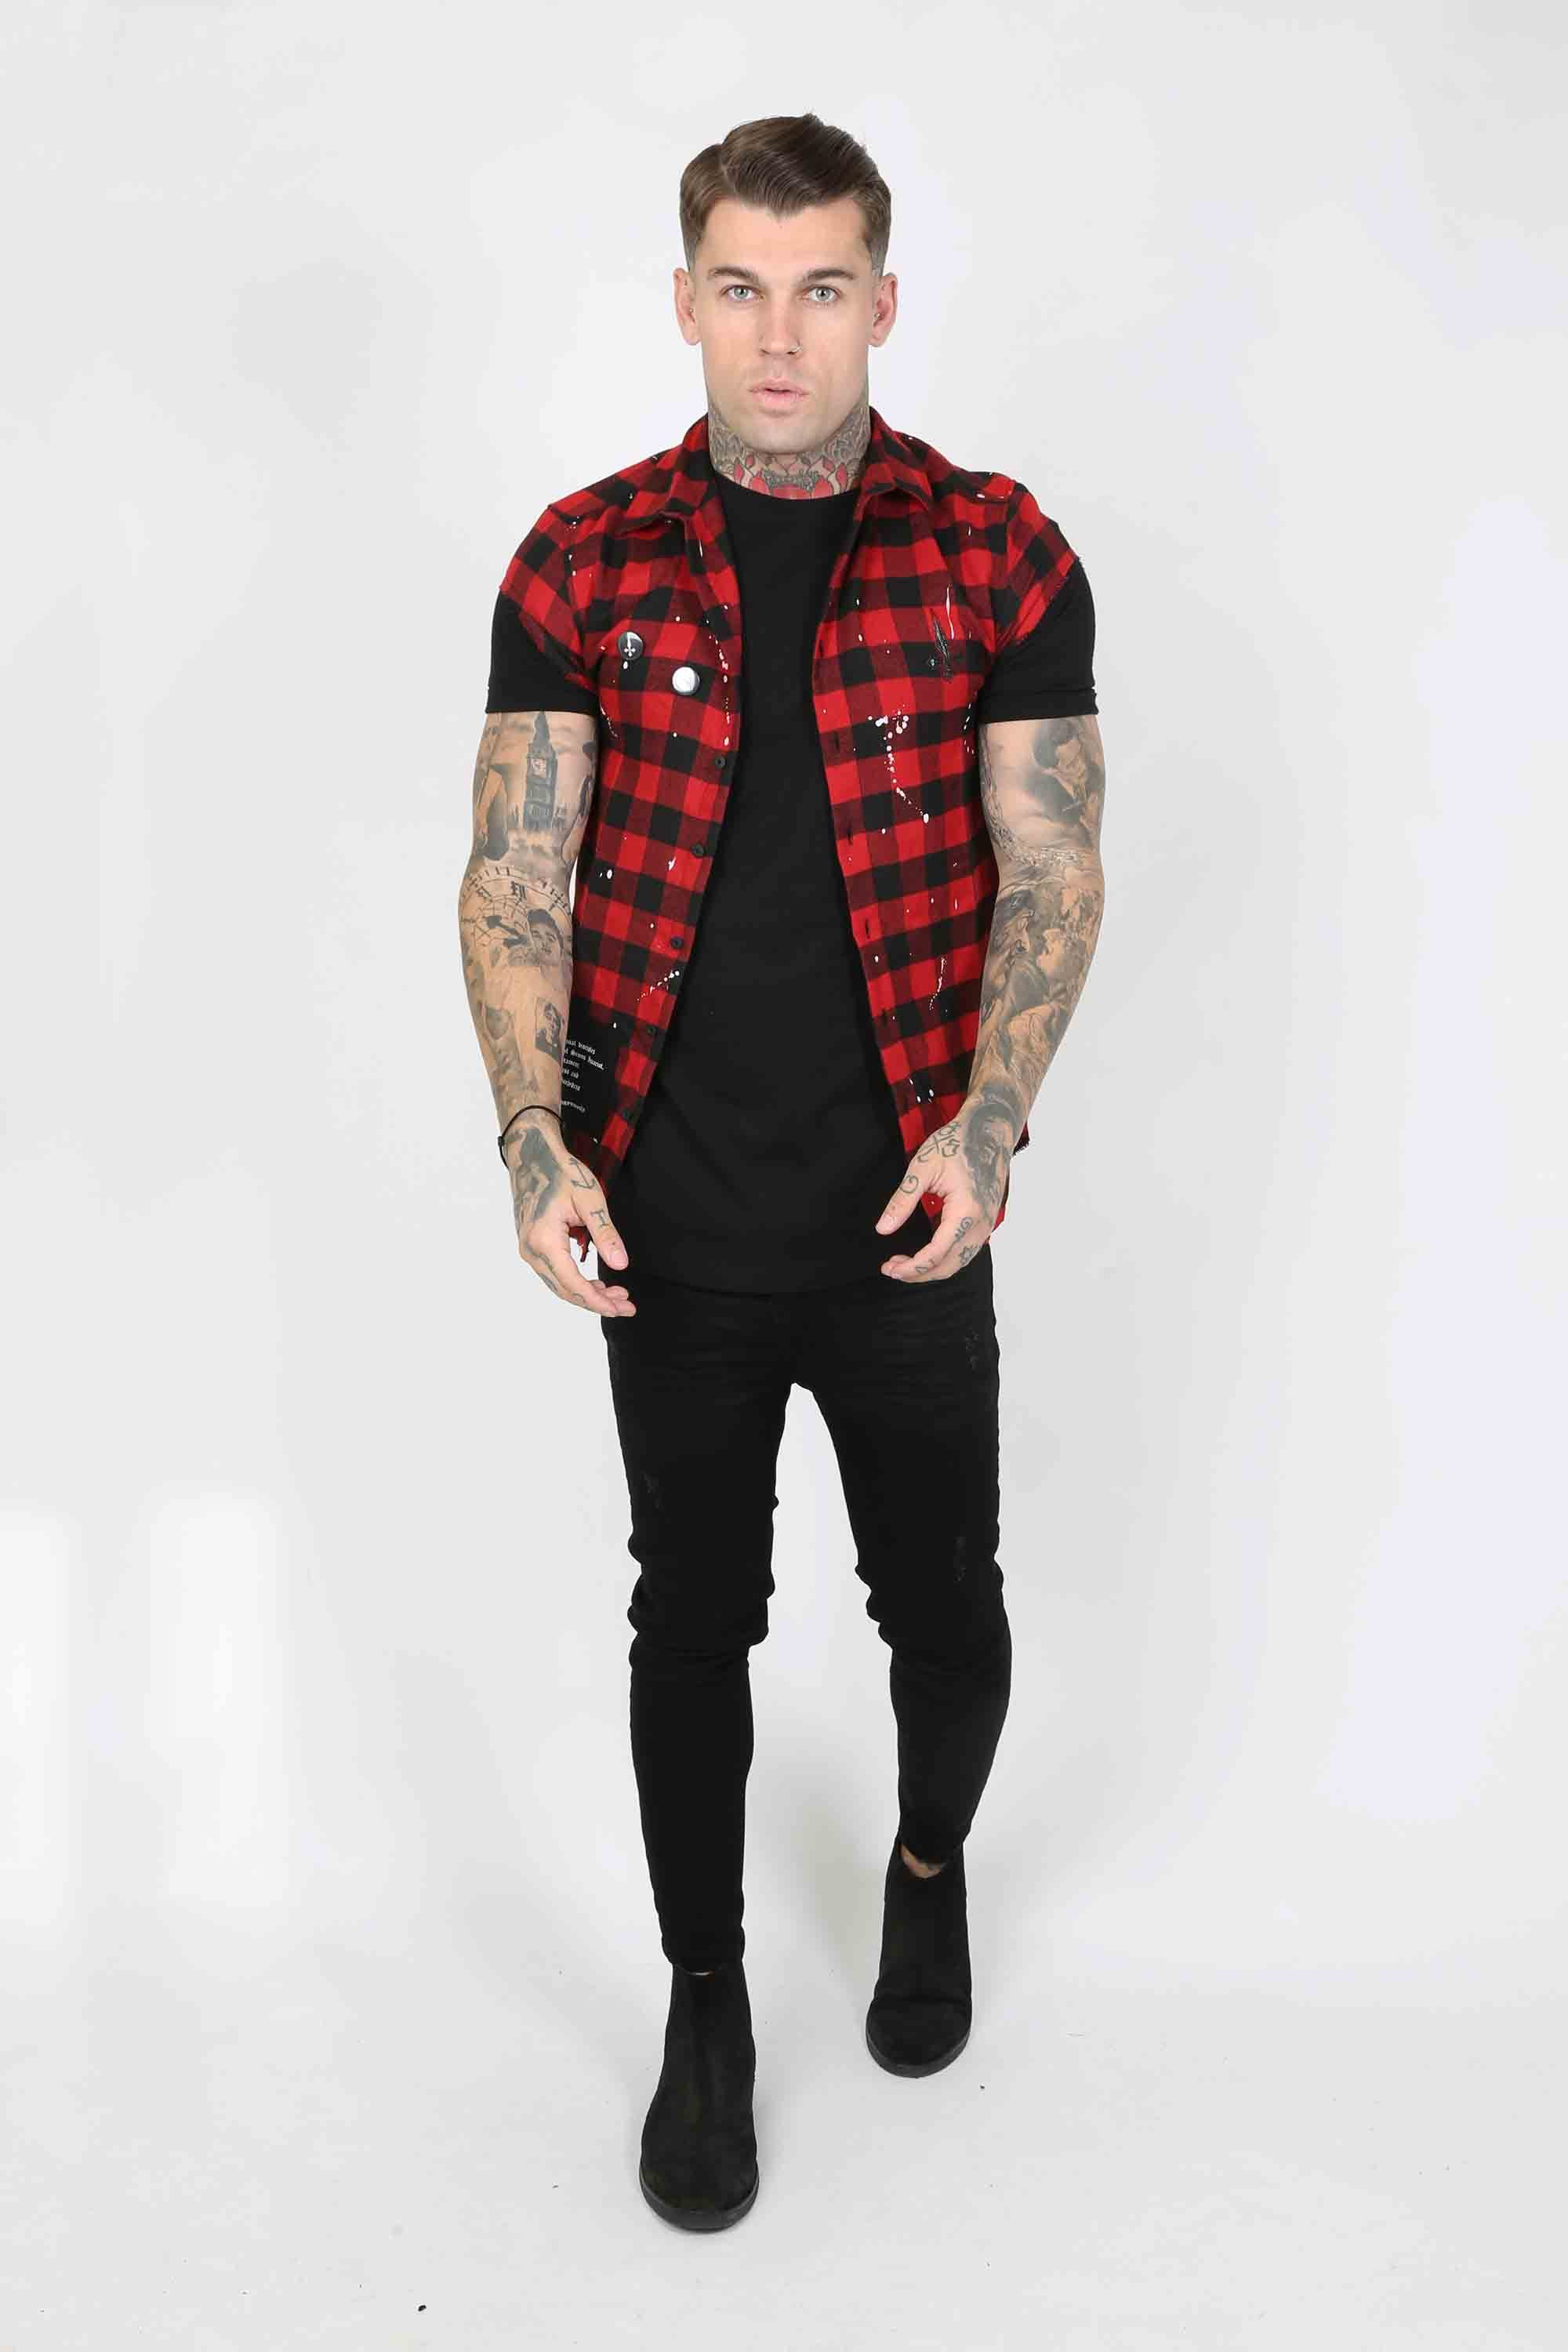 Punked Plaid Men's Overshirt - Red, Small